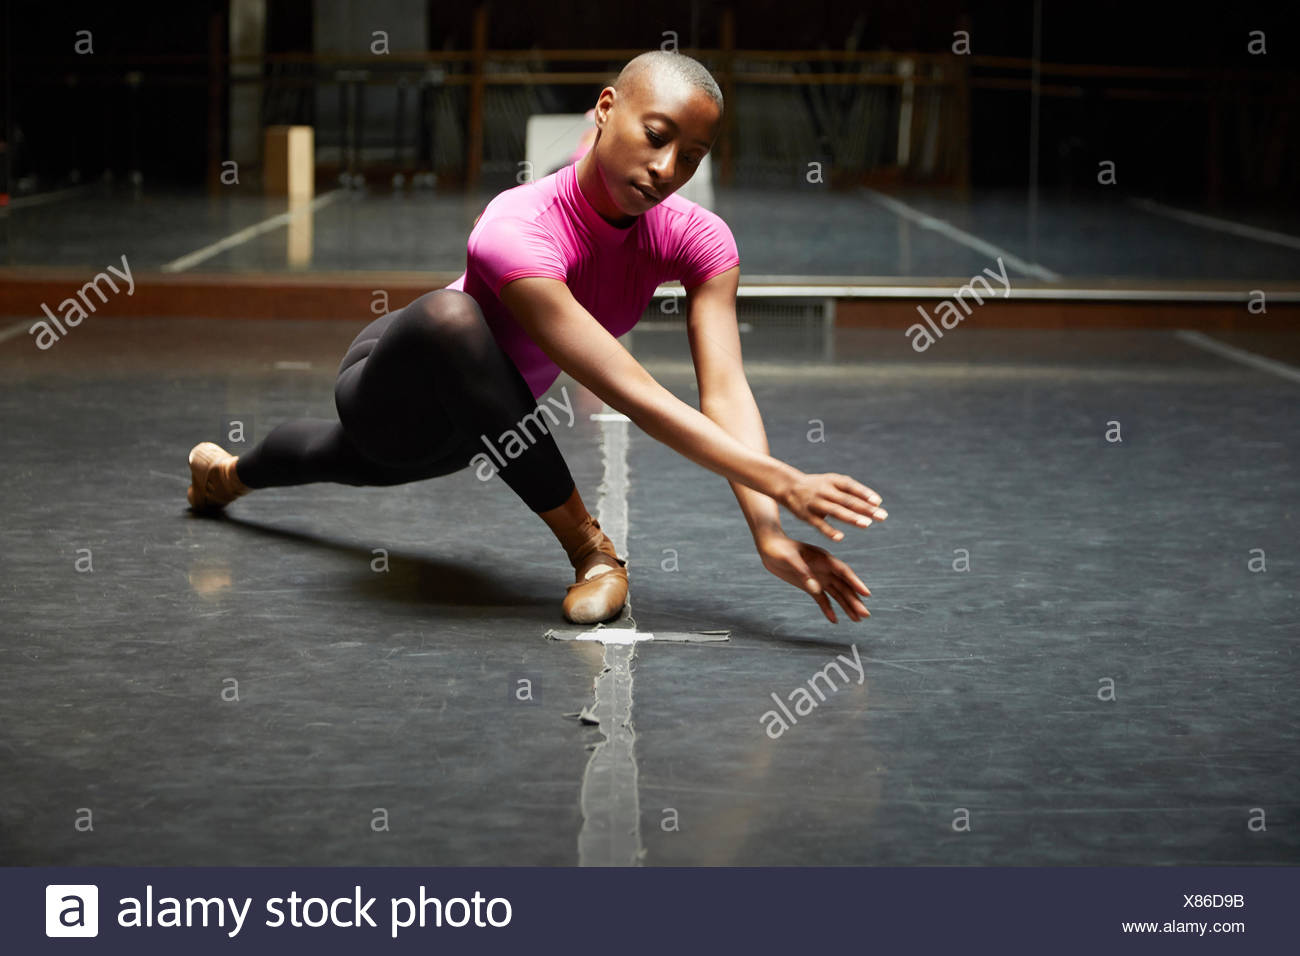 Ballet dancer in dance move Stock Photo